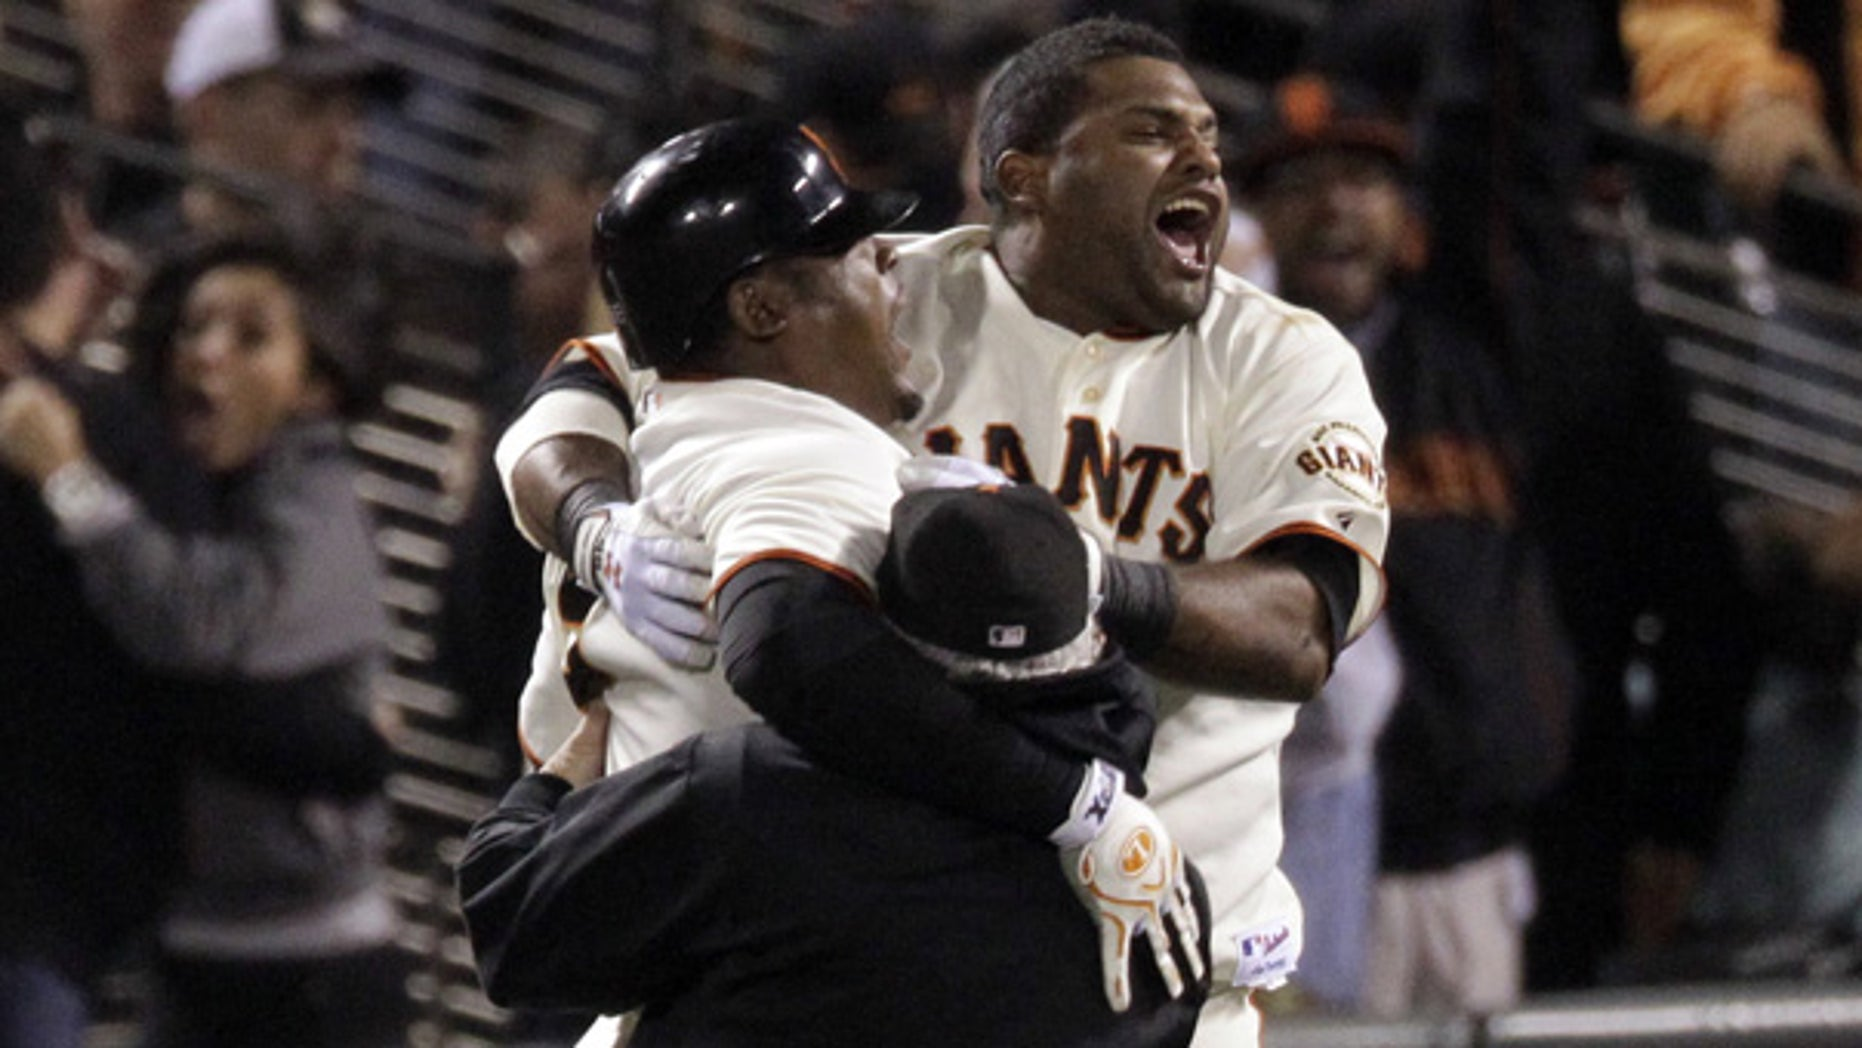 Oct. 20: San Francisco Giants' Juan Uribe, left, celebrates with Pablo Sandoval, right, after hitting a game-winning sacrifice fly during the ninth inning.